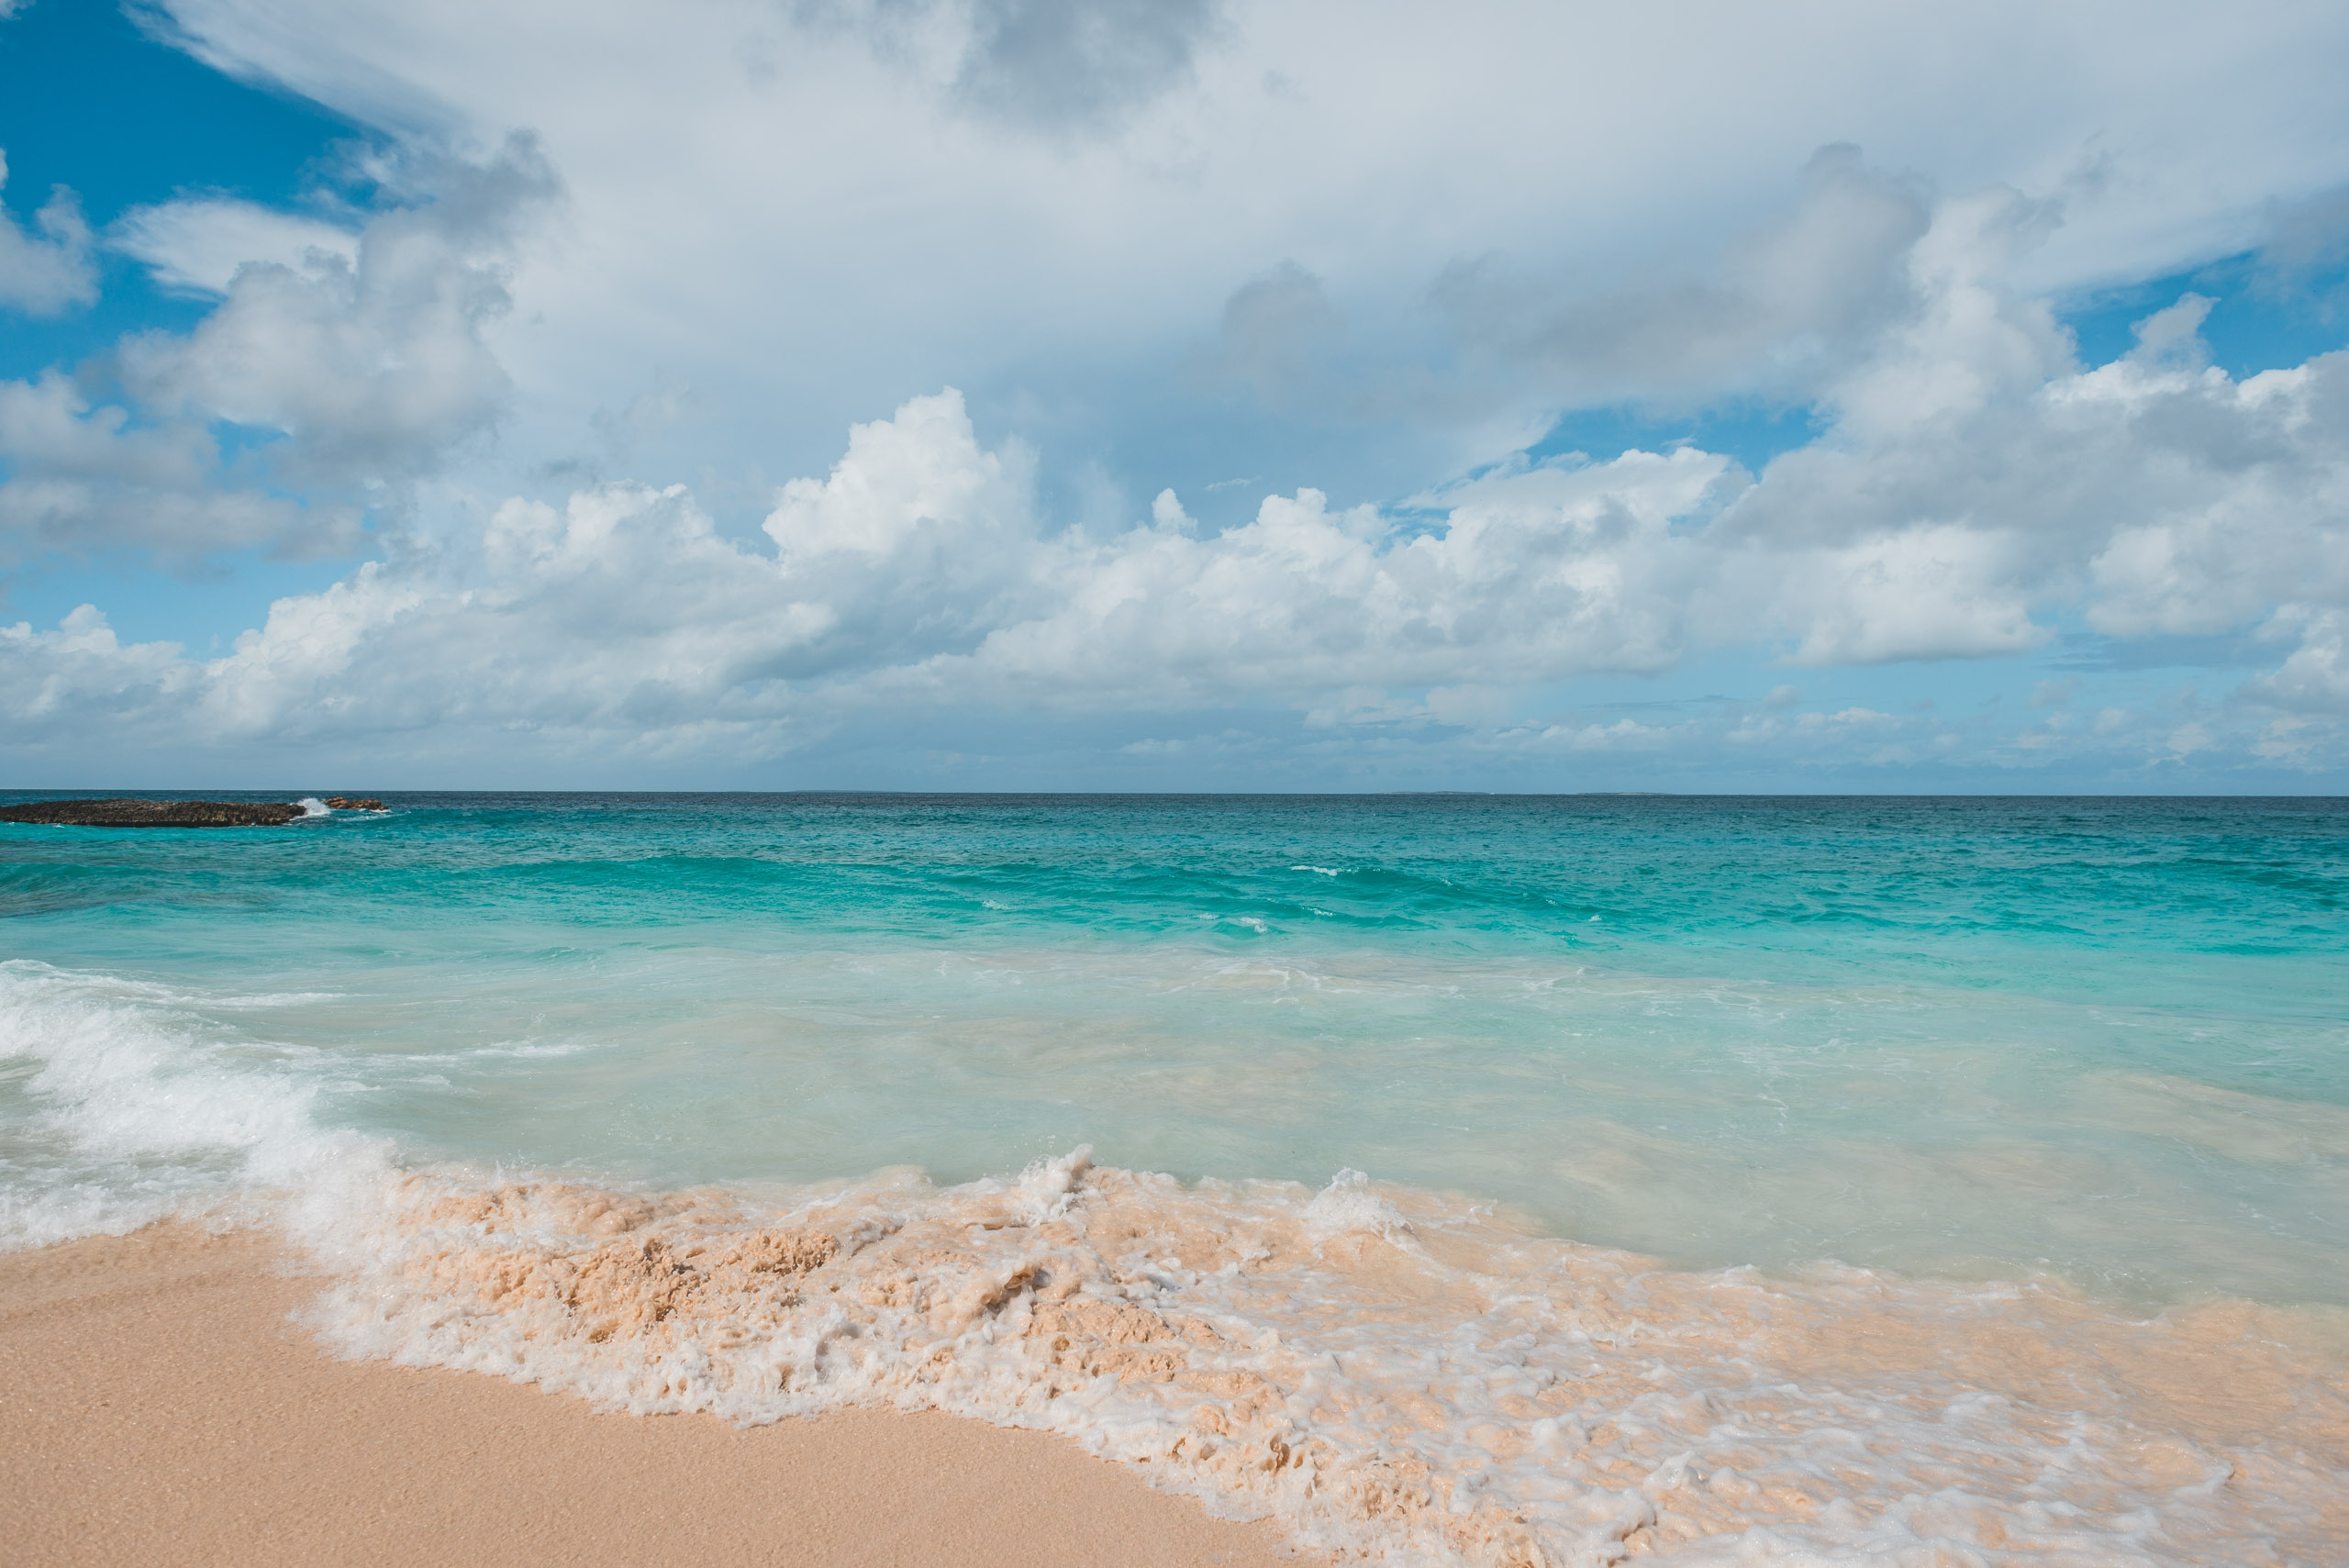 First Day on the Beach in Anguilla